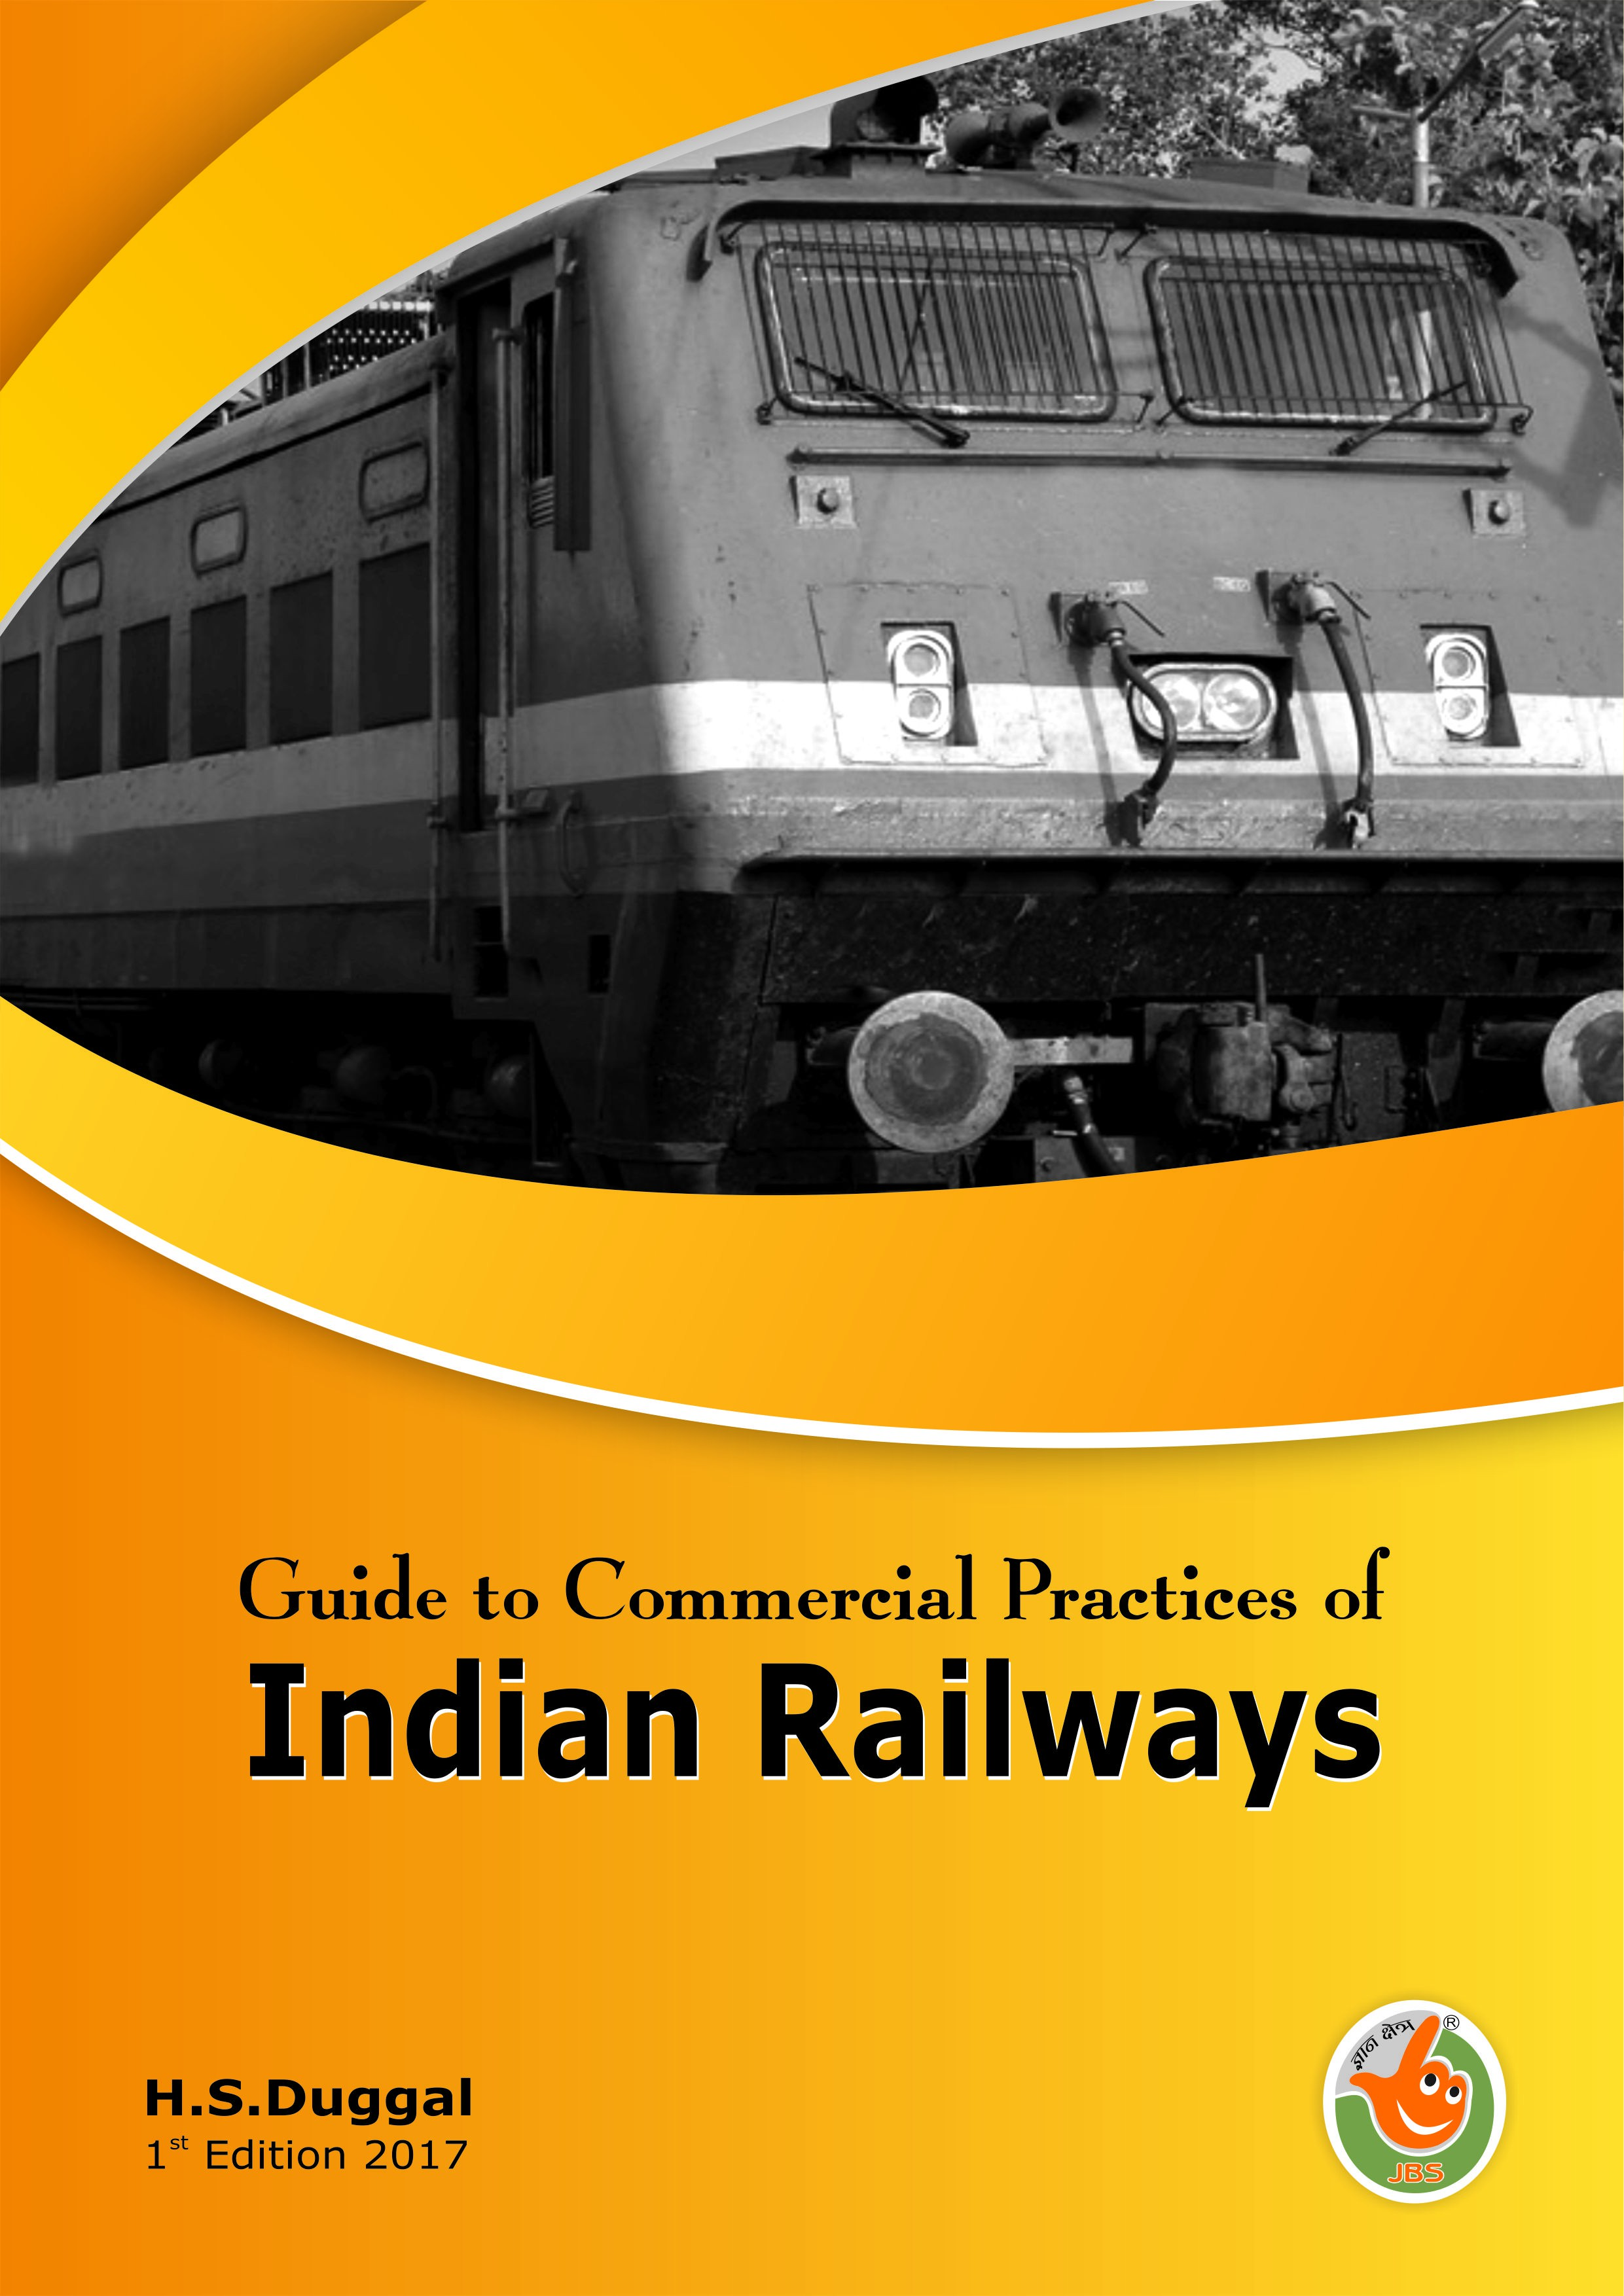 Guide to Commercial Practices of Indian Railways